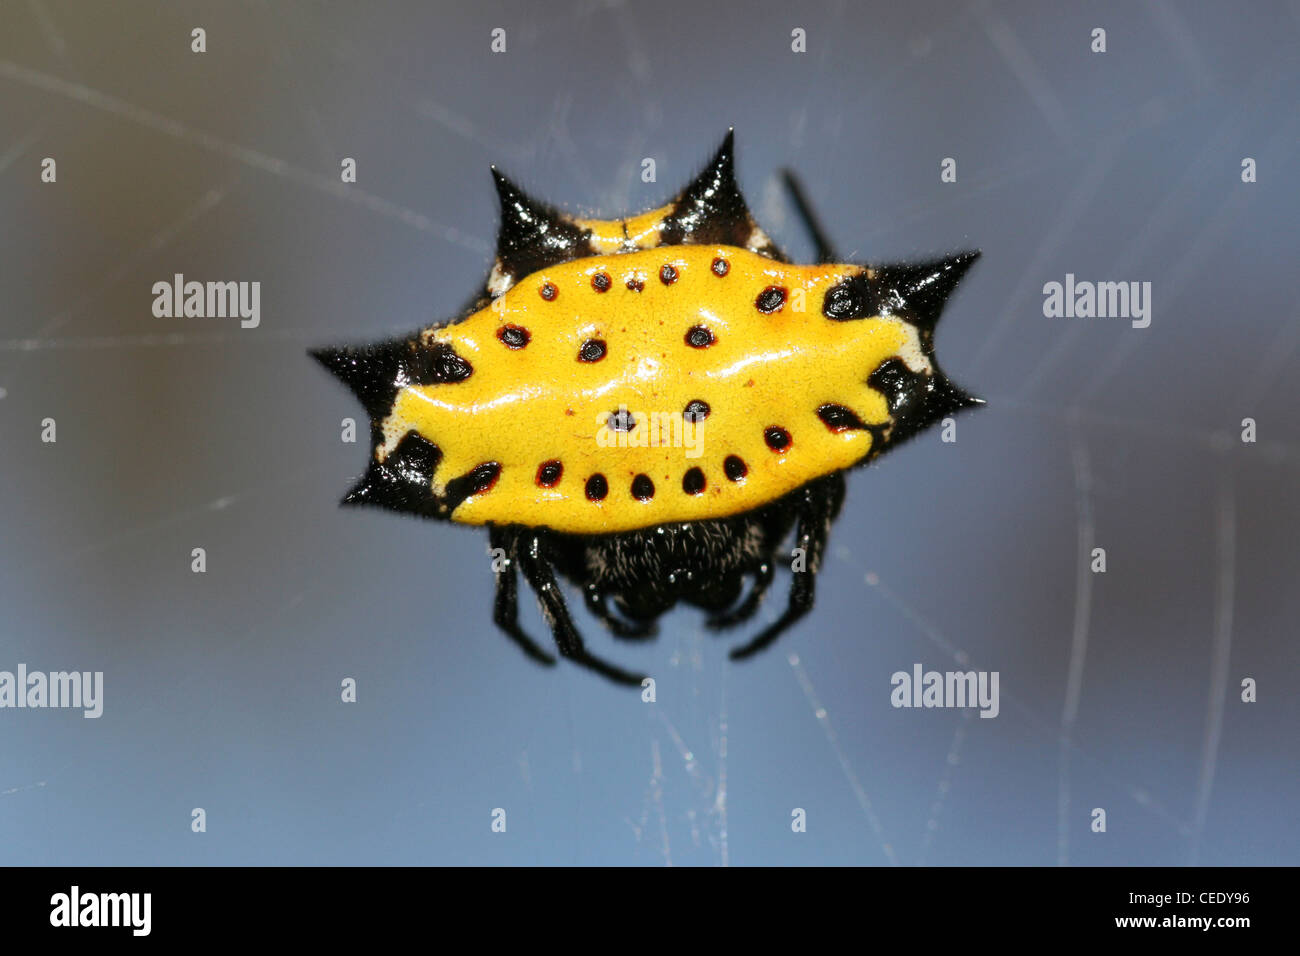 Crab Spider Gasteracantha cancriformis - Stock Image